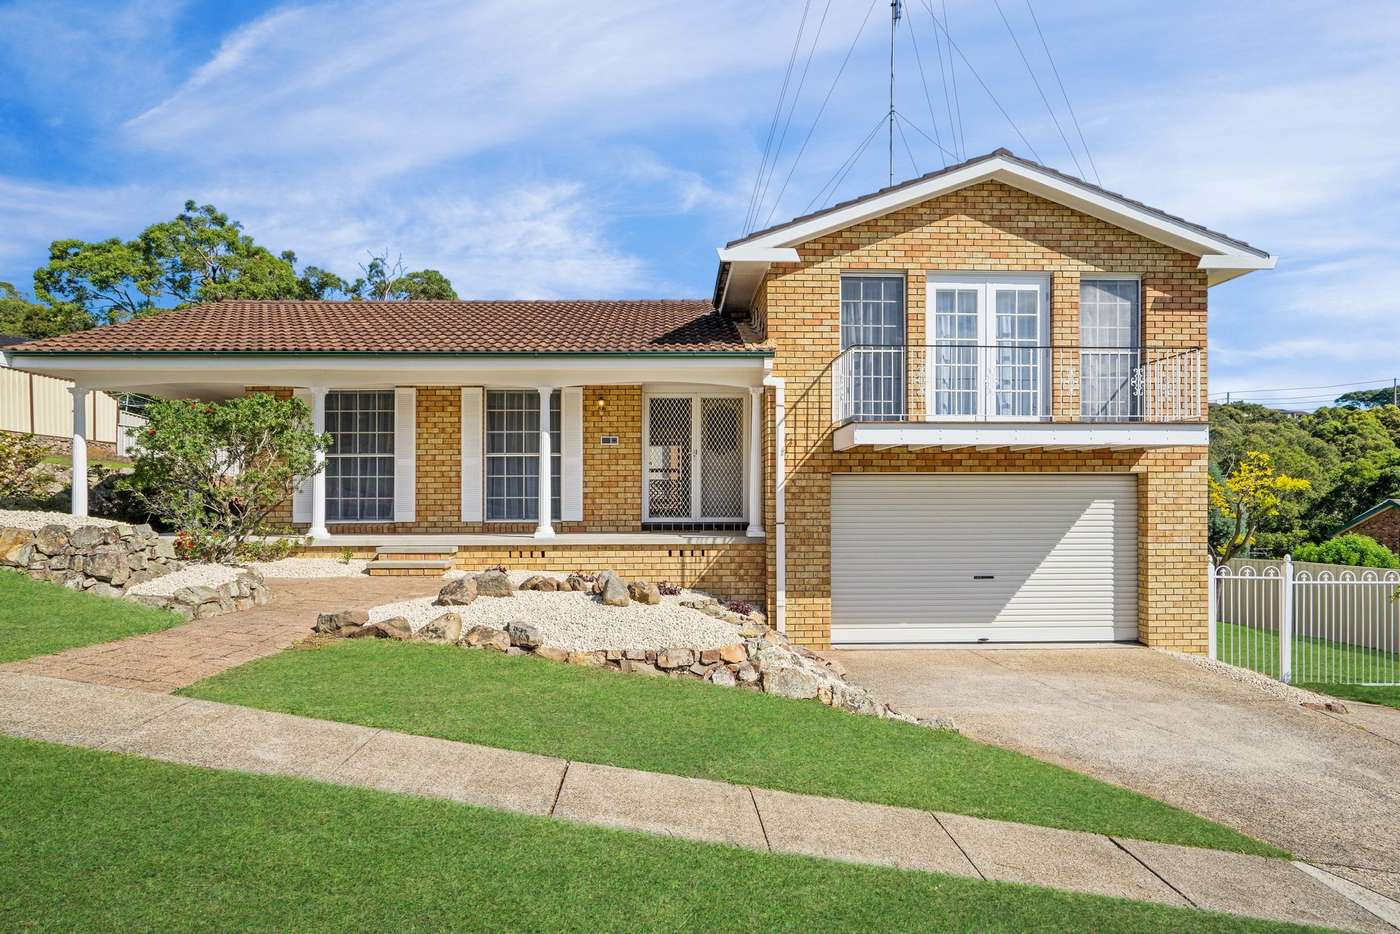 Main view of Homely house listing, 46 Sherburn Place, Charlestown NSW 2290